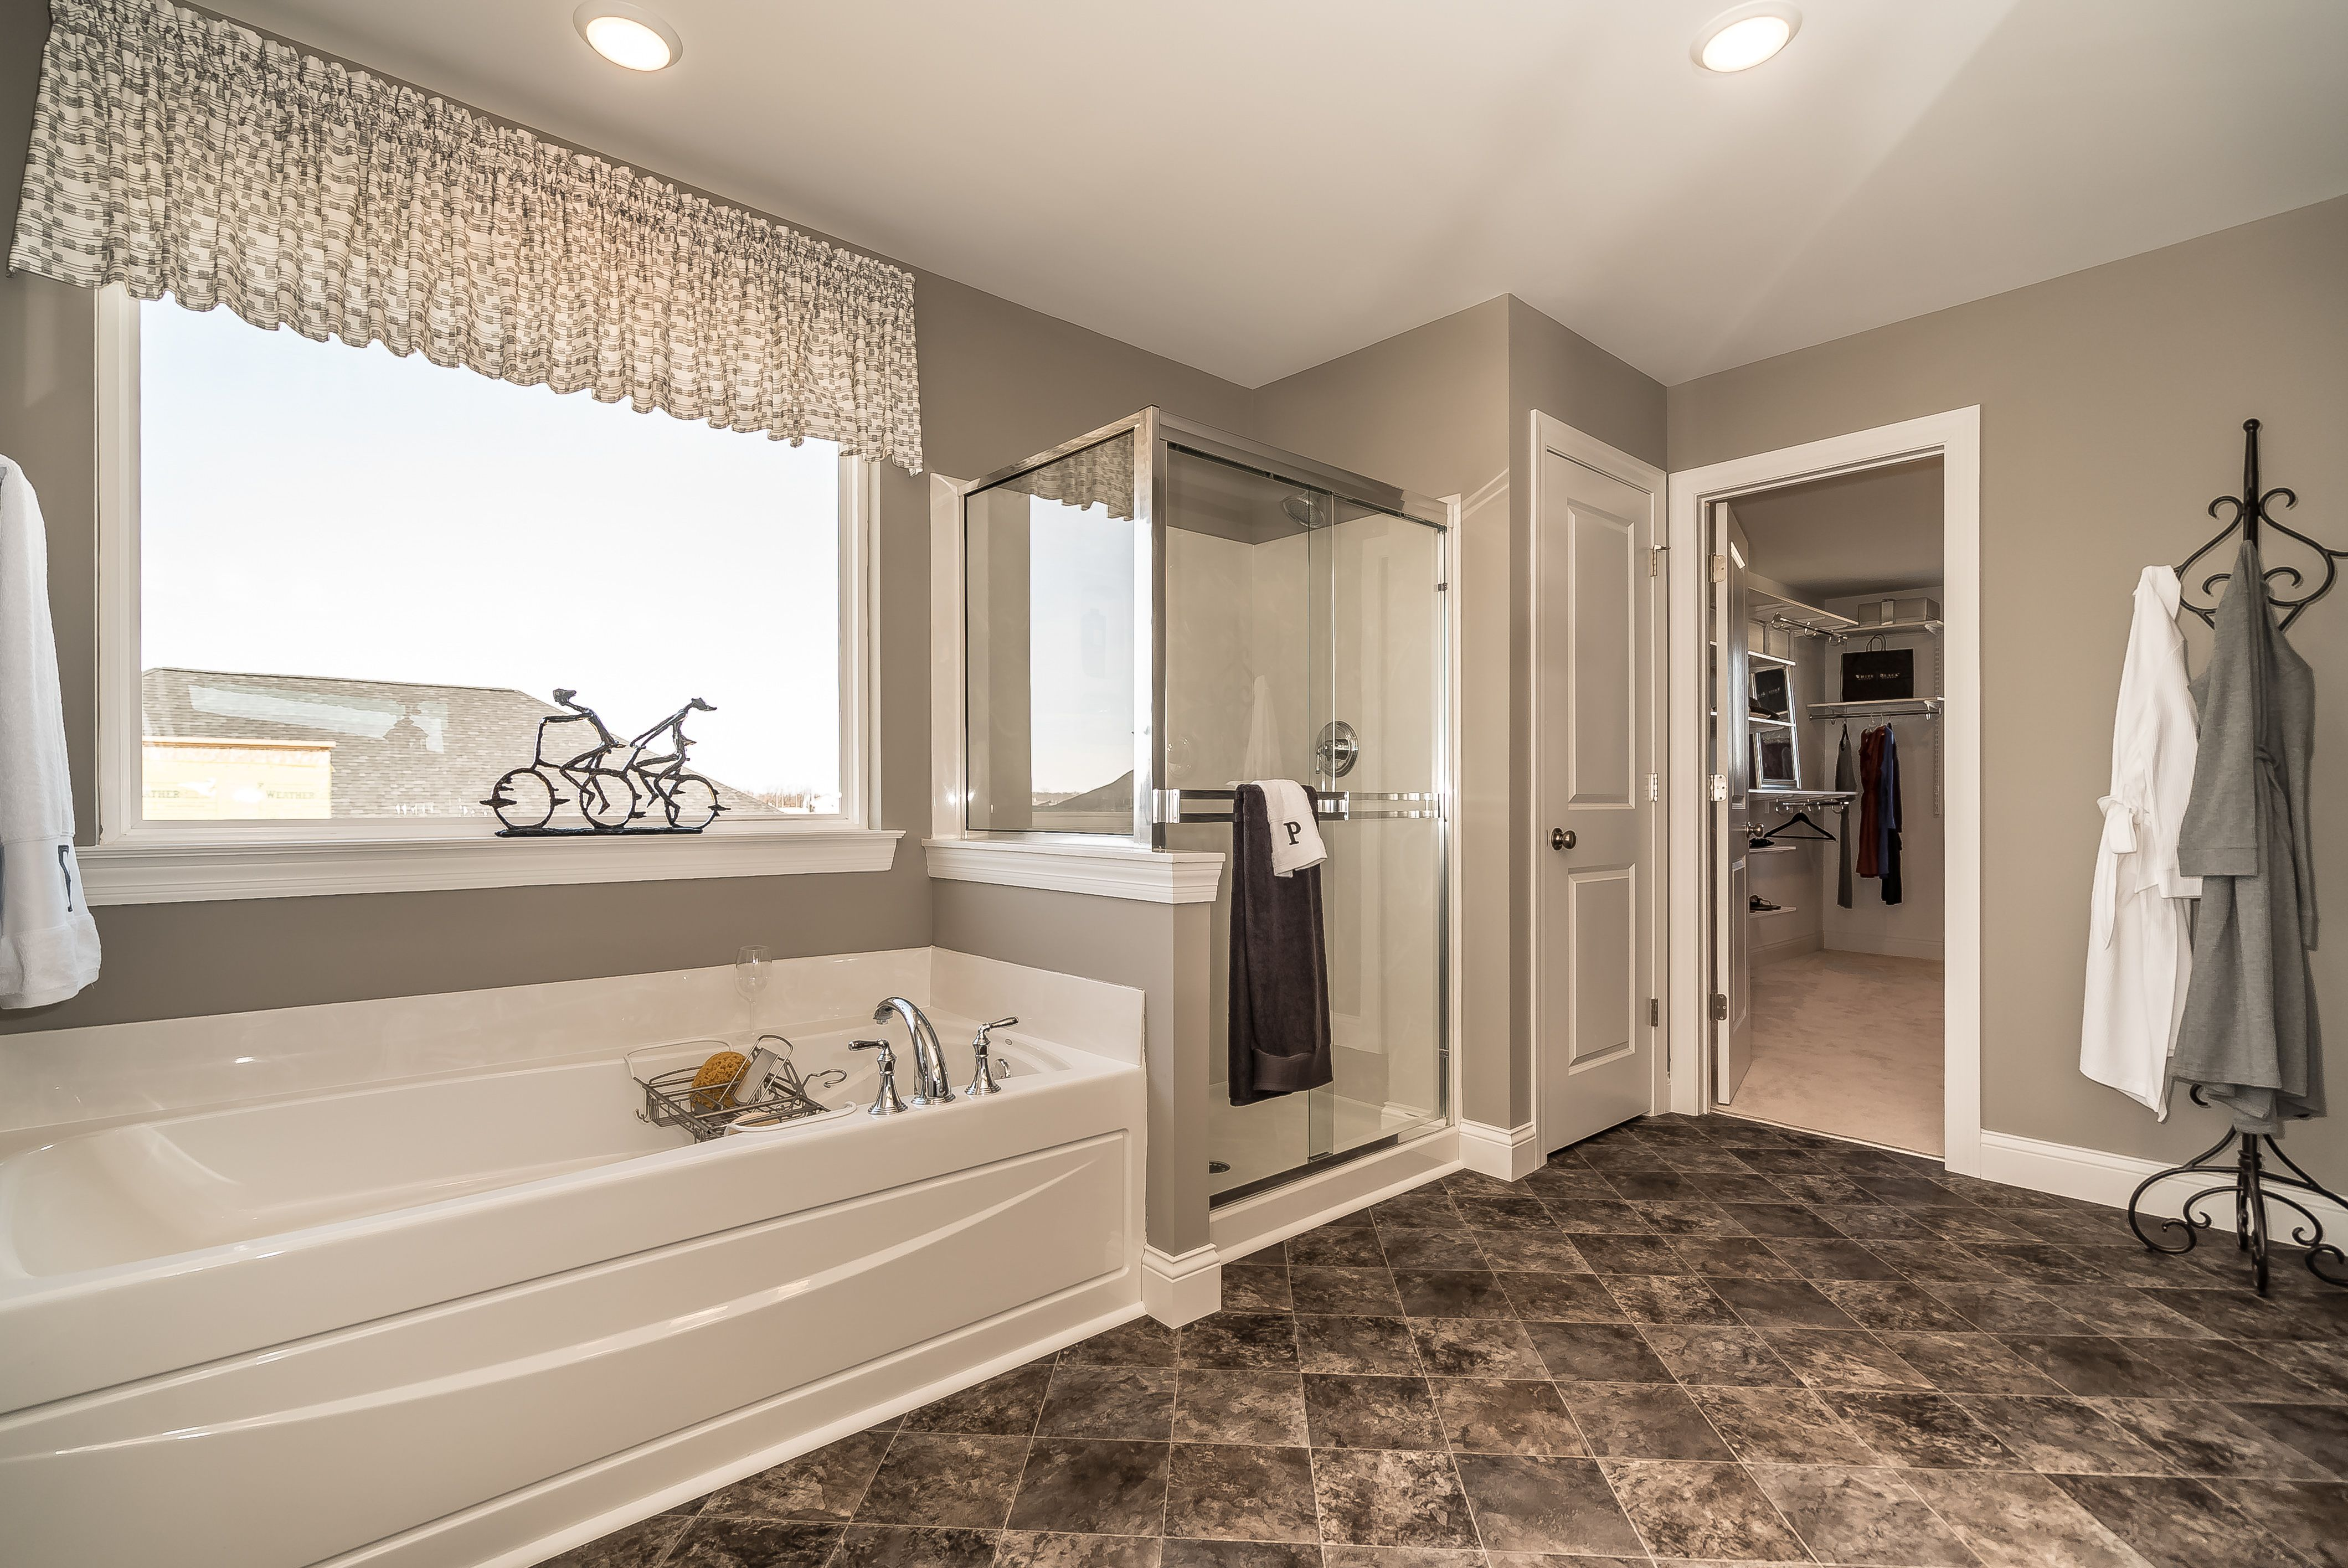 Master bath shower and tub | Home builders, Home and ...